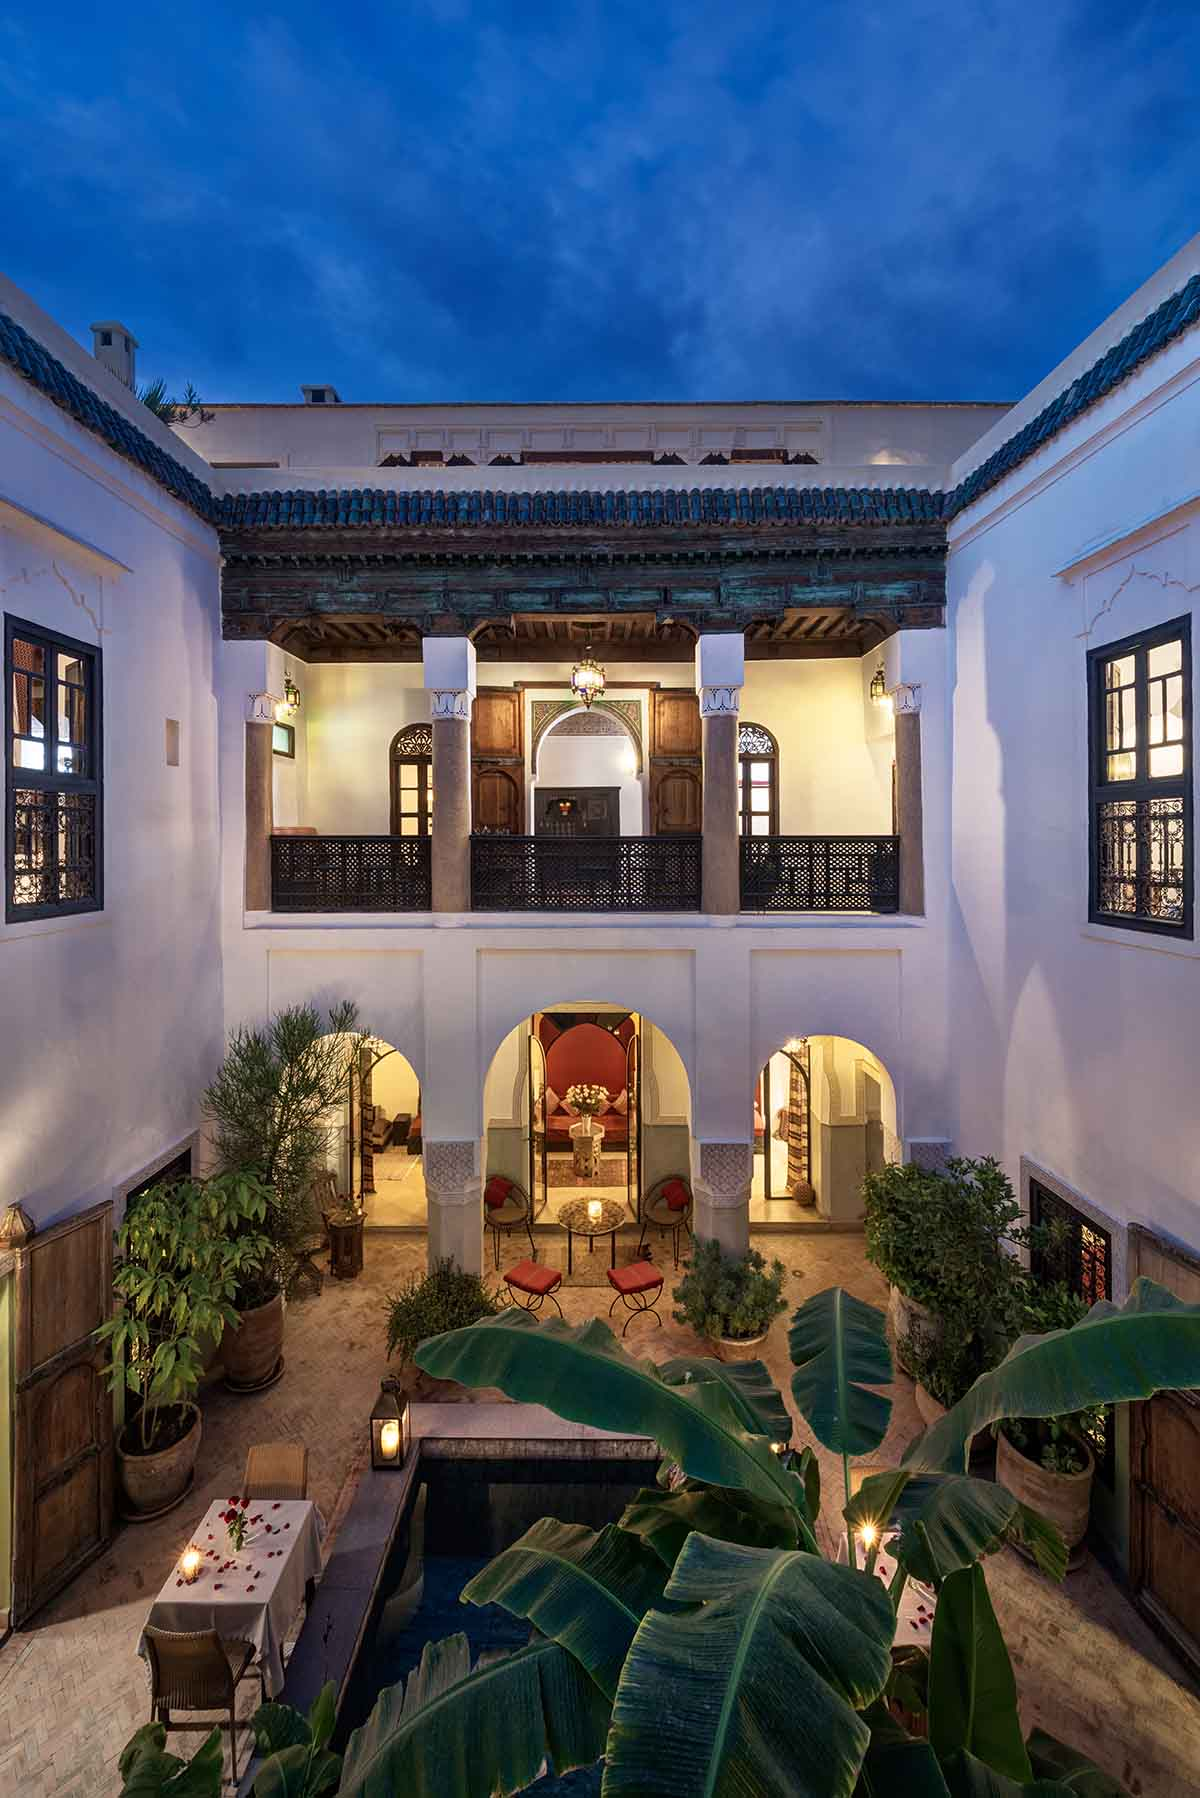 RIAD AZZAR GUEST HOUSE MARRAKECH DININ